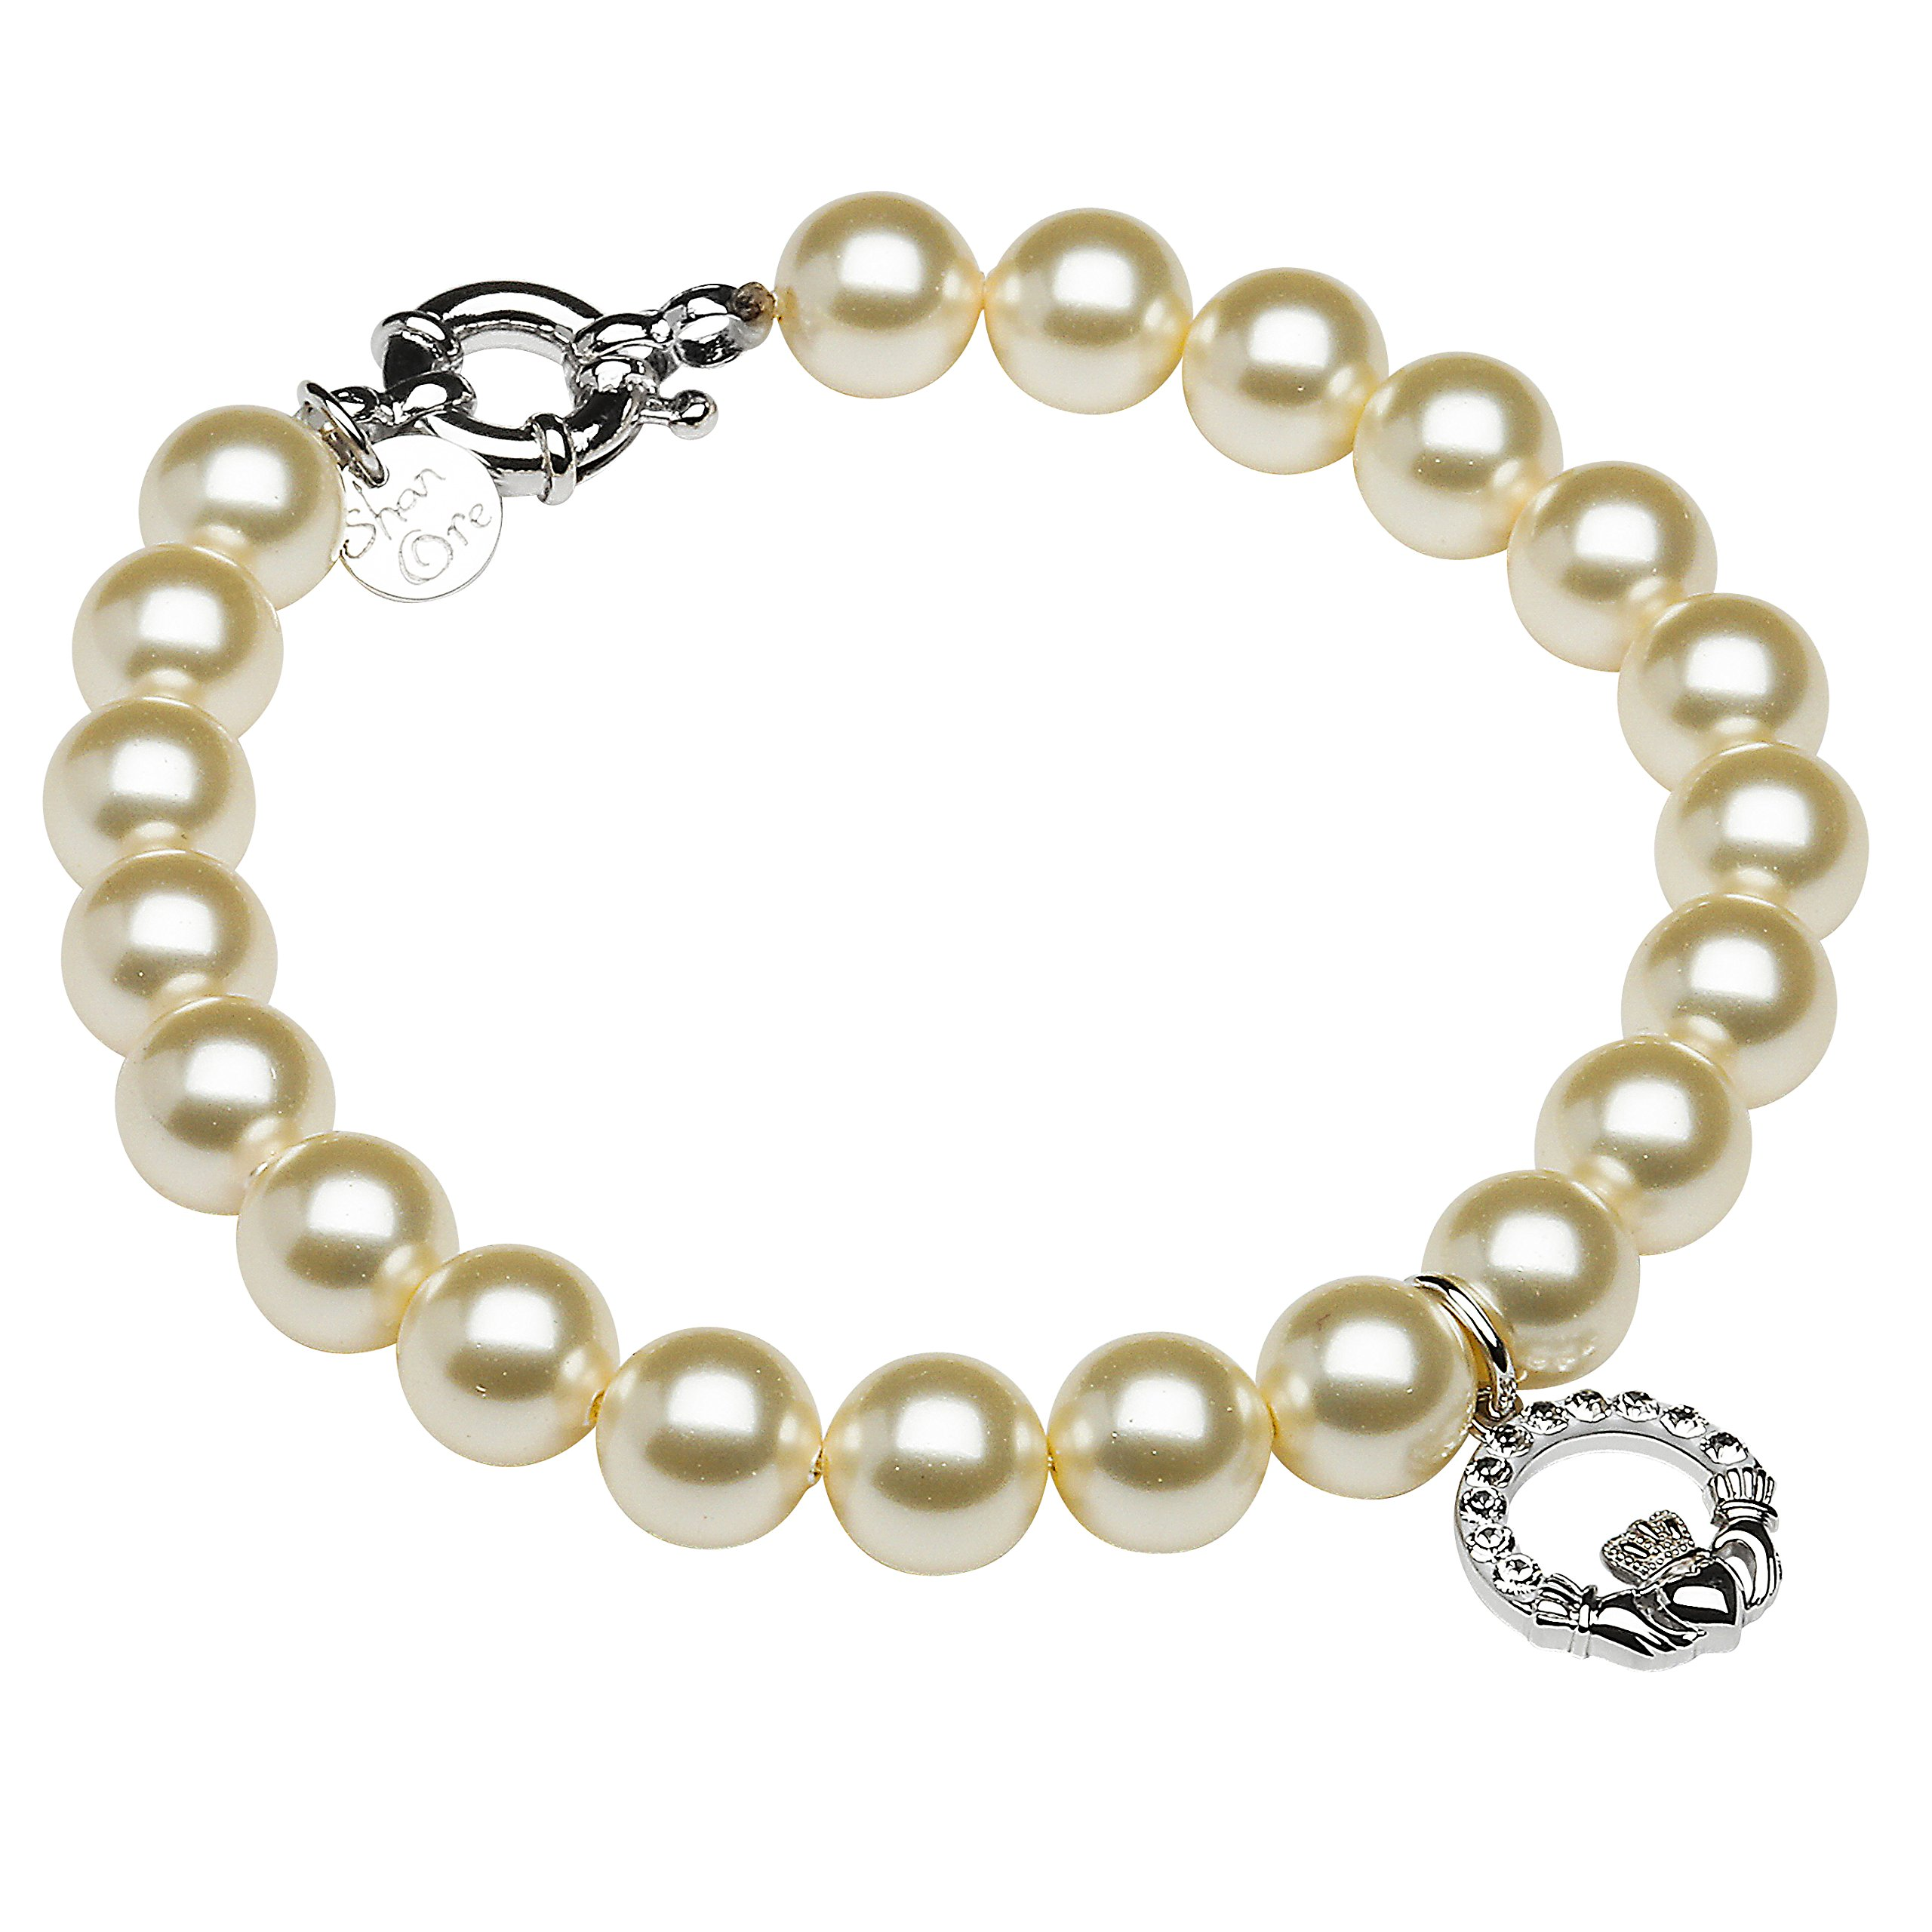 Hallmarked Sterling Silver Claddagh Pearl Bracelet With Swarovski Crystals